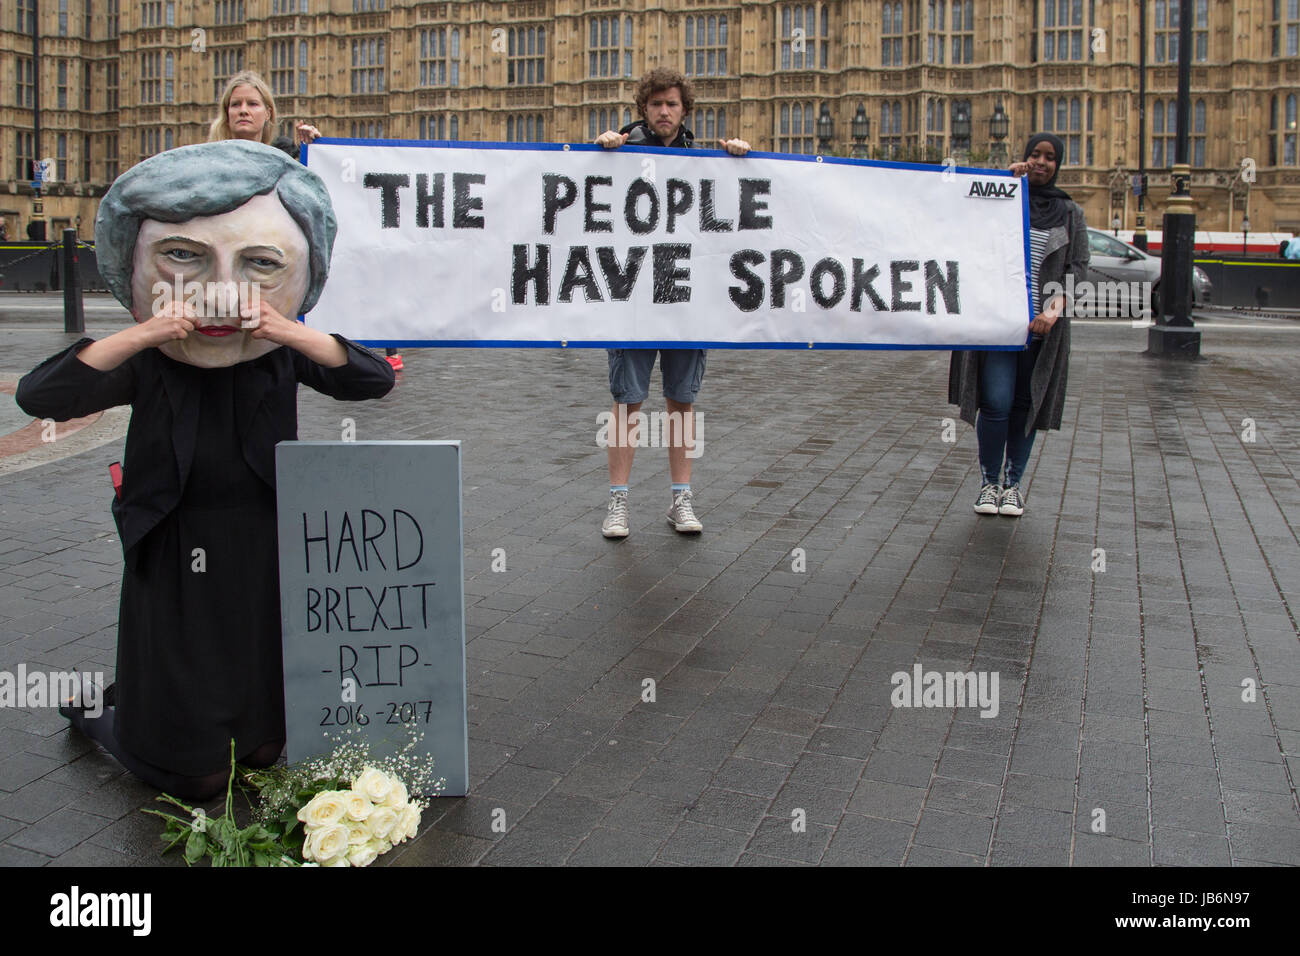 London, UK. 9th June, 2017. Campaigners from global citizens´ movement Avaaz demonstrate after UK general elections - Stock Image